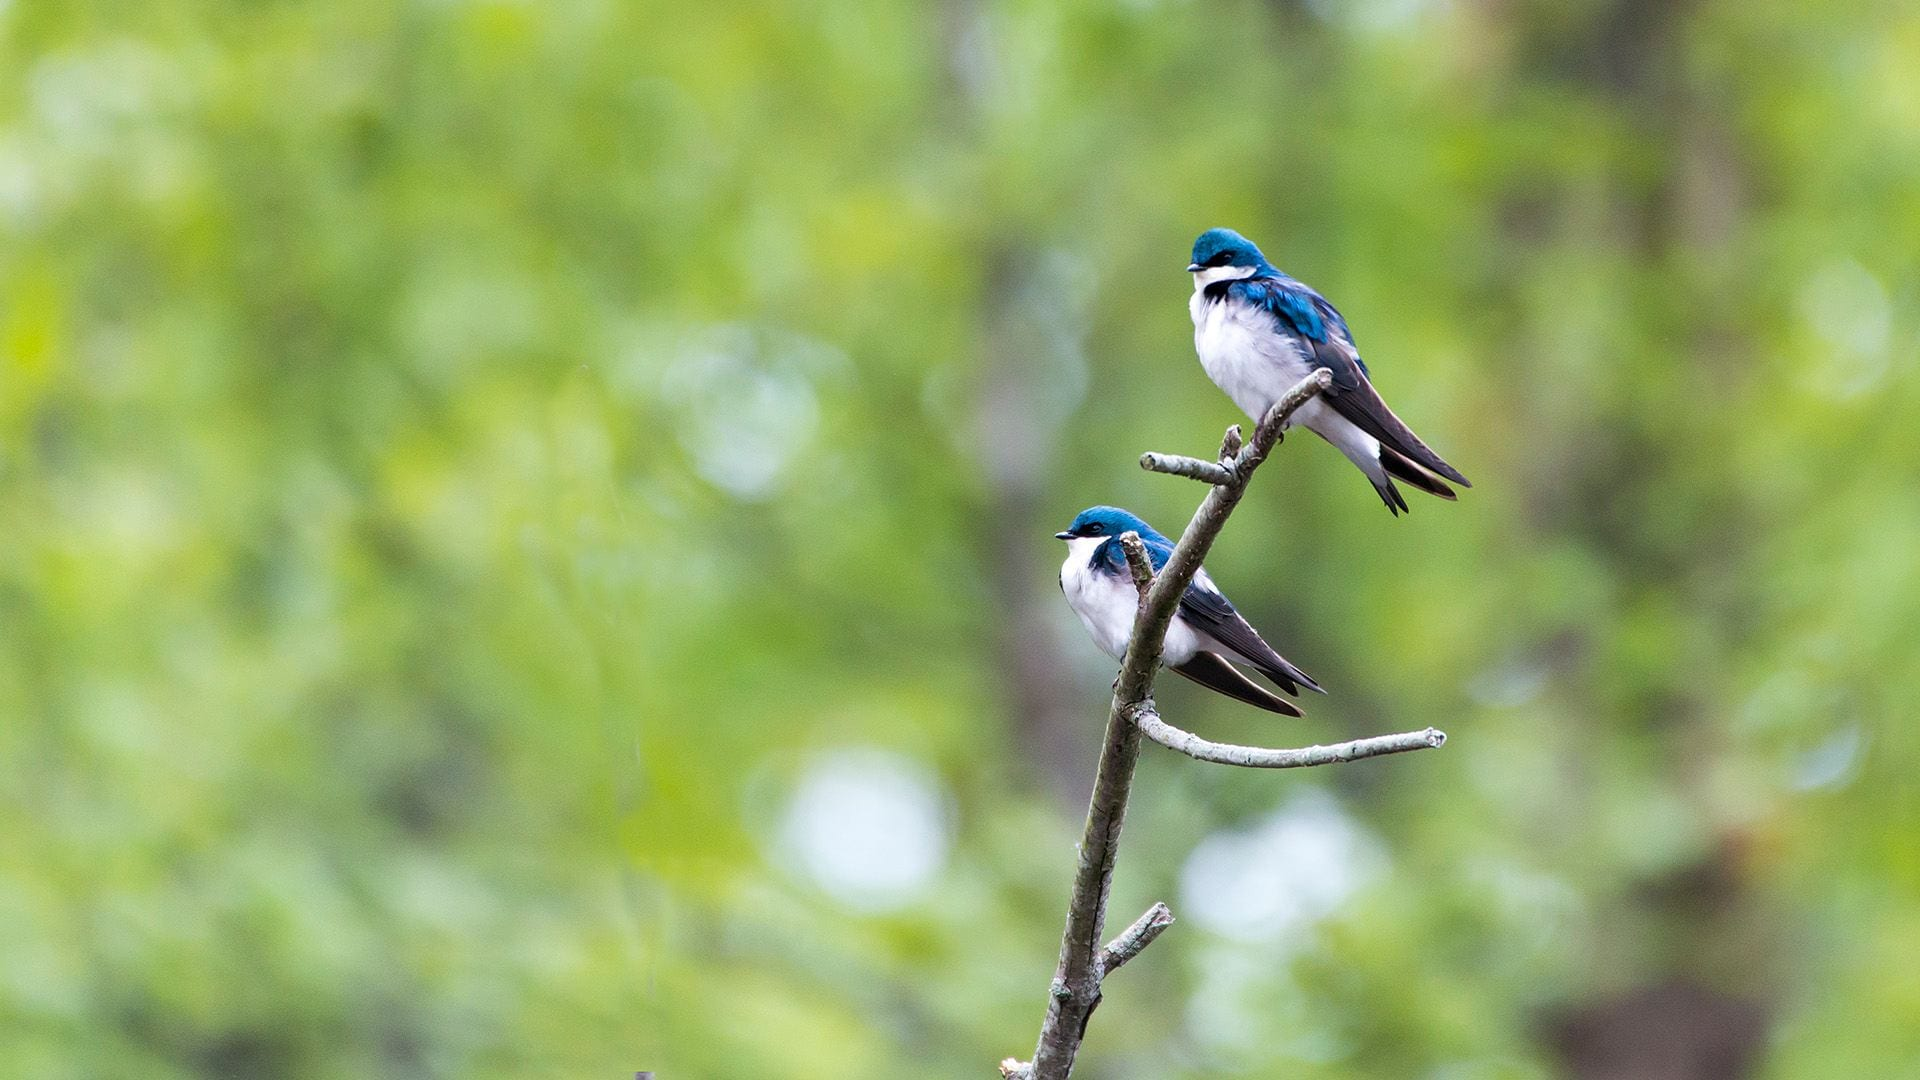 Two adult birds are perched on top of a tree branch in the foreground, and bright green leaves are visible in the background. The birds have white feathers on their abdomens, black feathers on their lower backs and tails, and iridescent green and blue feathers on their heads, necks, and upper backs.